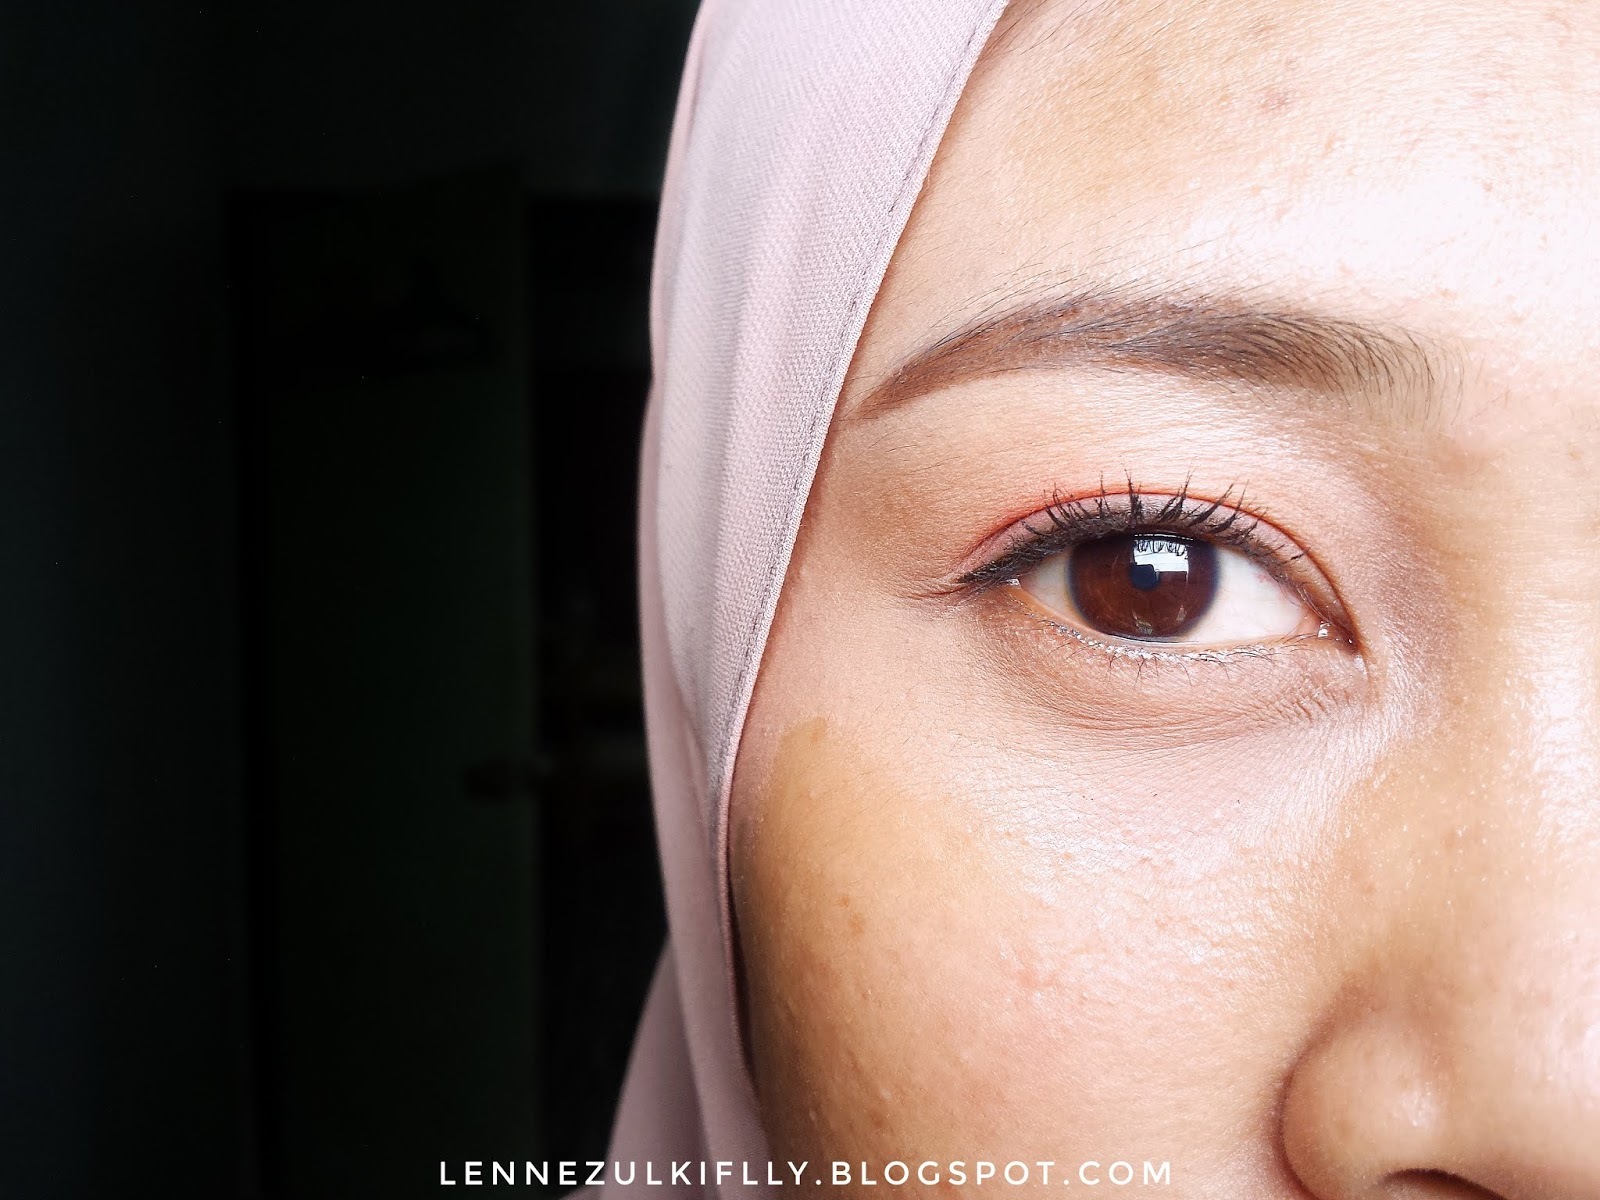 Healthier and Brighter Complexion with Hansaegee Nature! | LENNE ZULKIFLLY